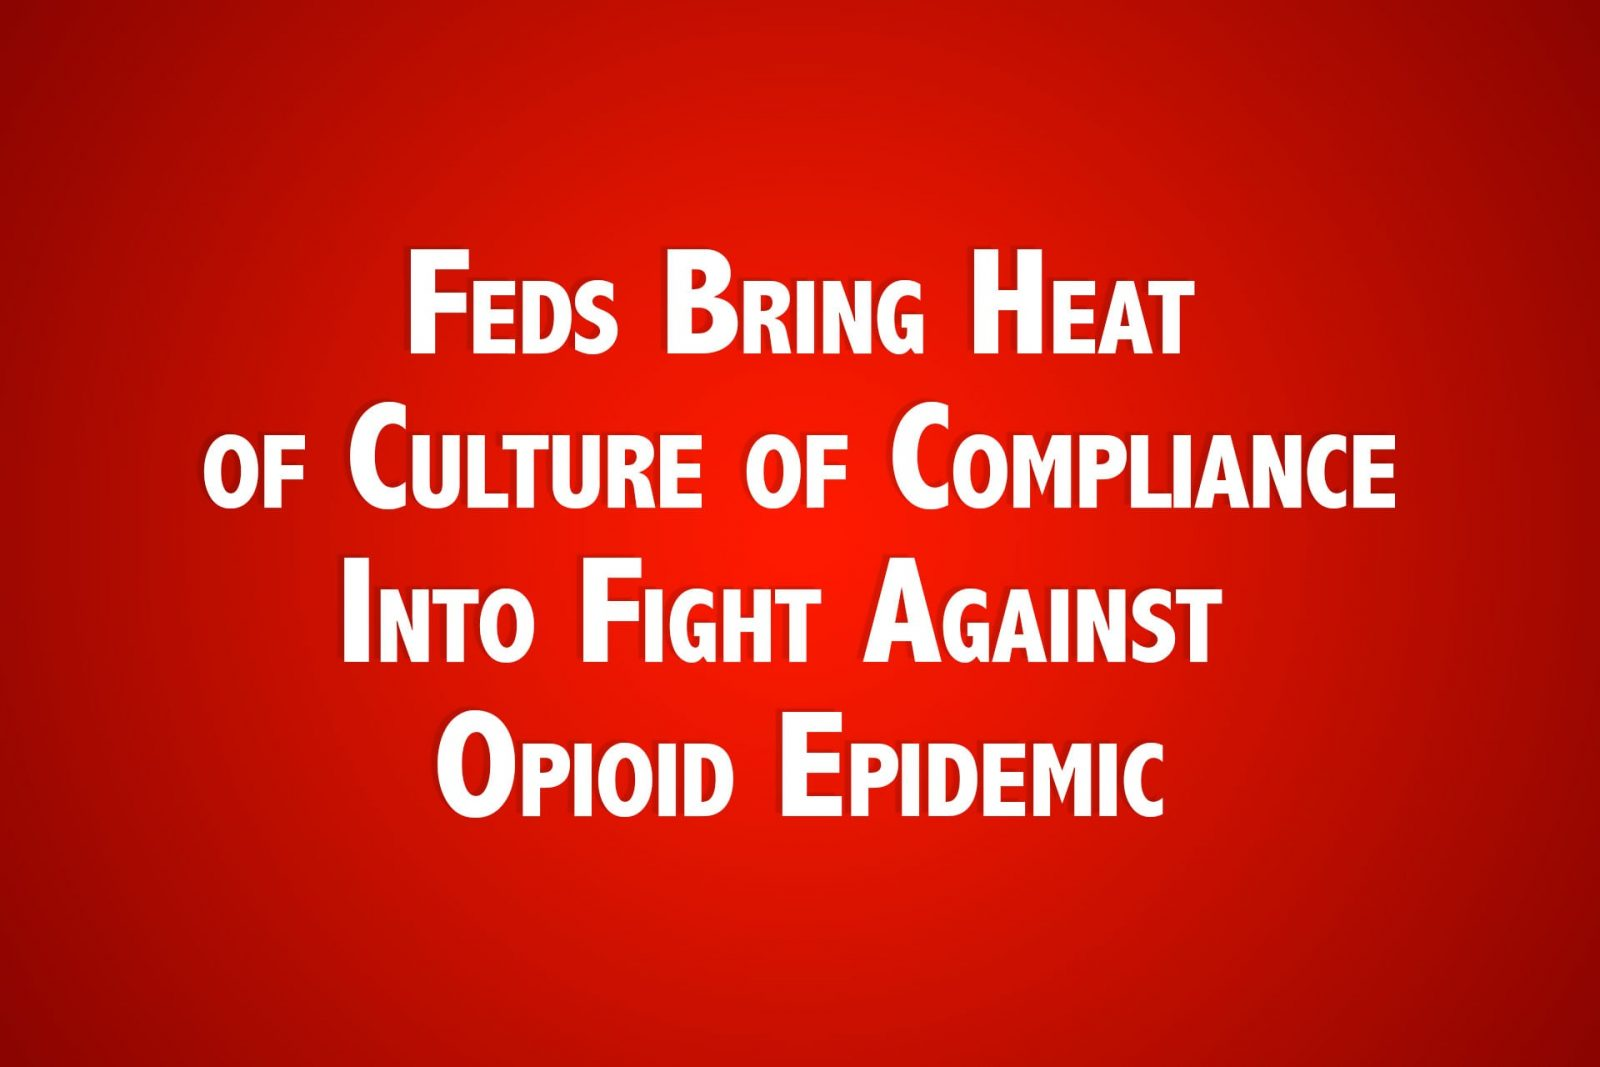 Feds Bring Heat of Culture of Compliance Into Fight Against Opioid Epidemic